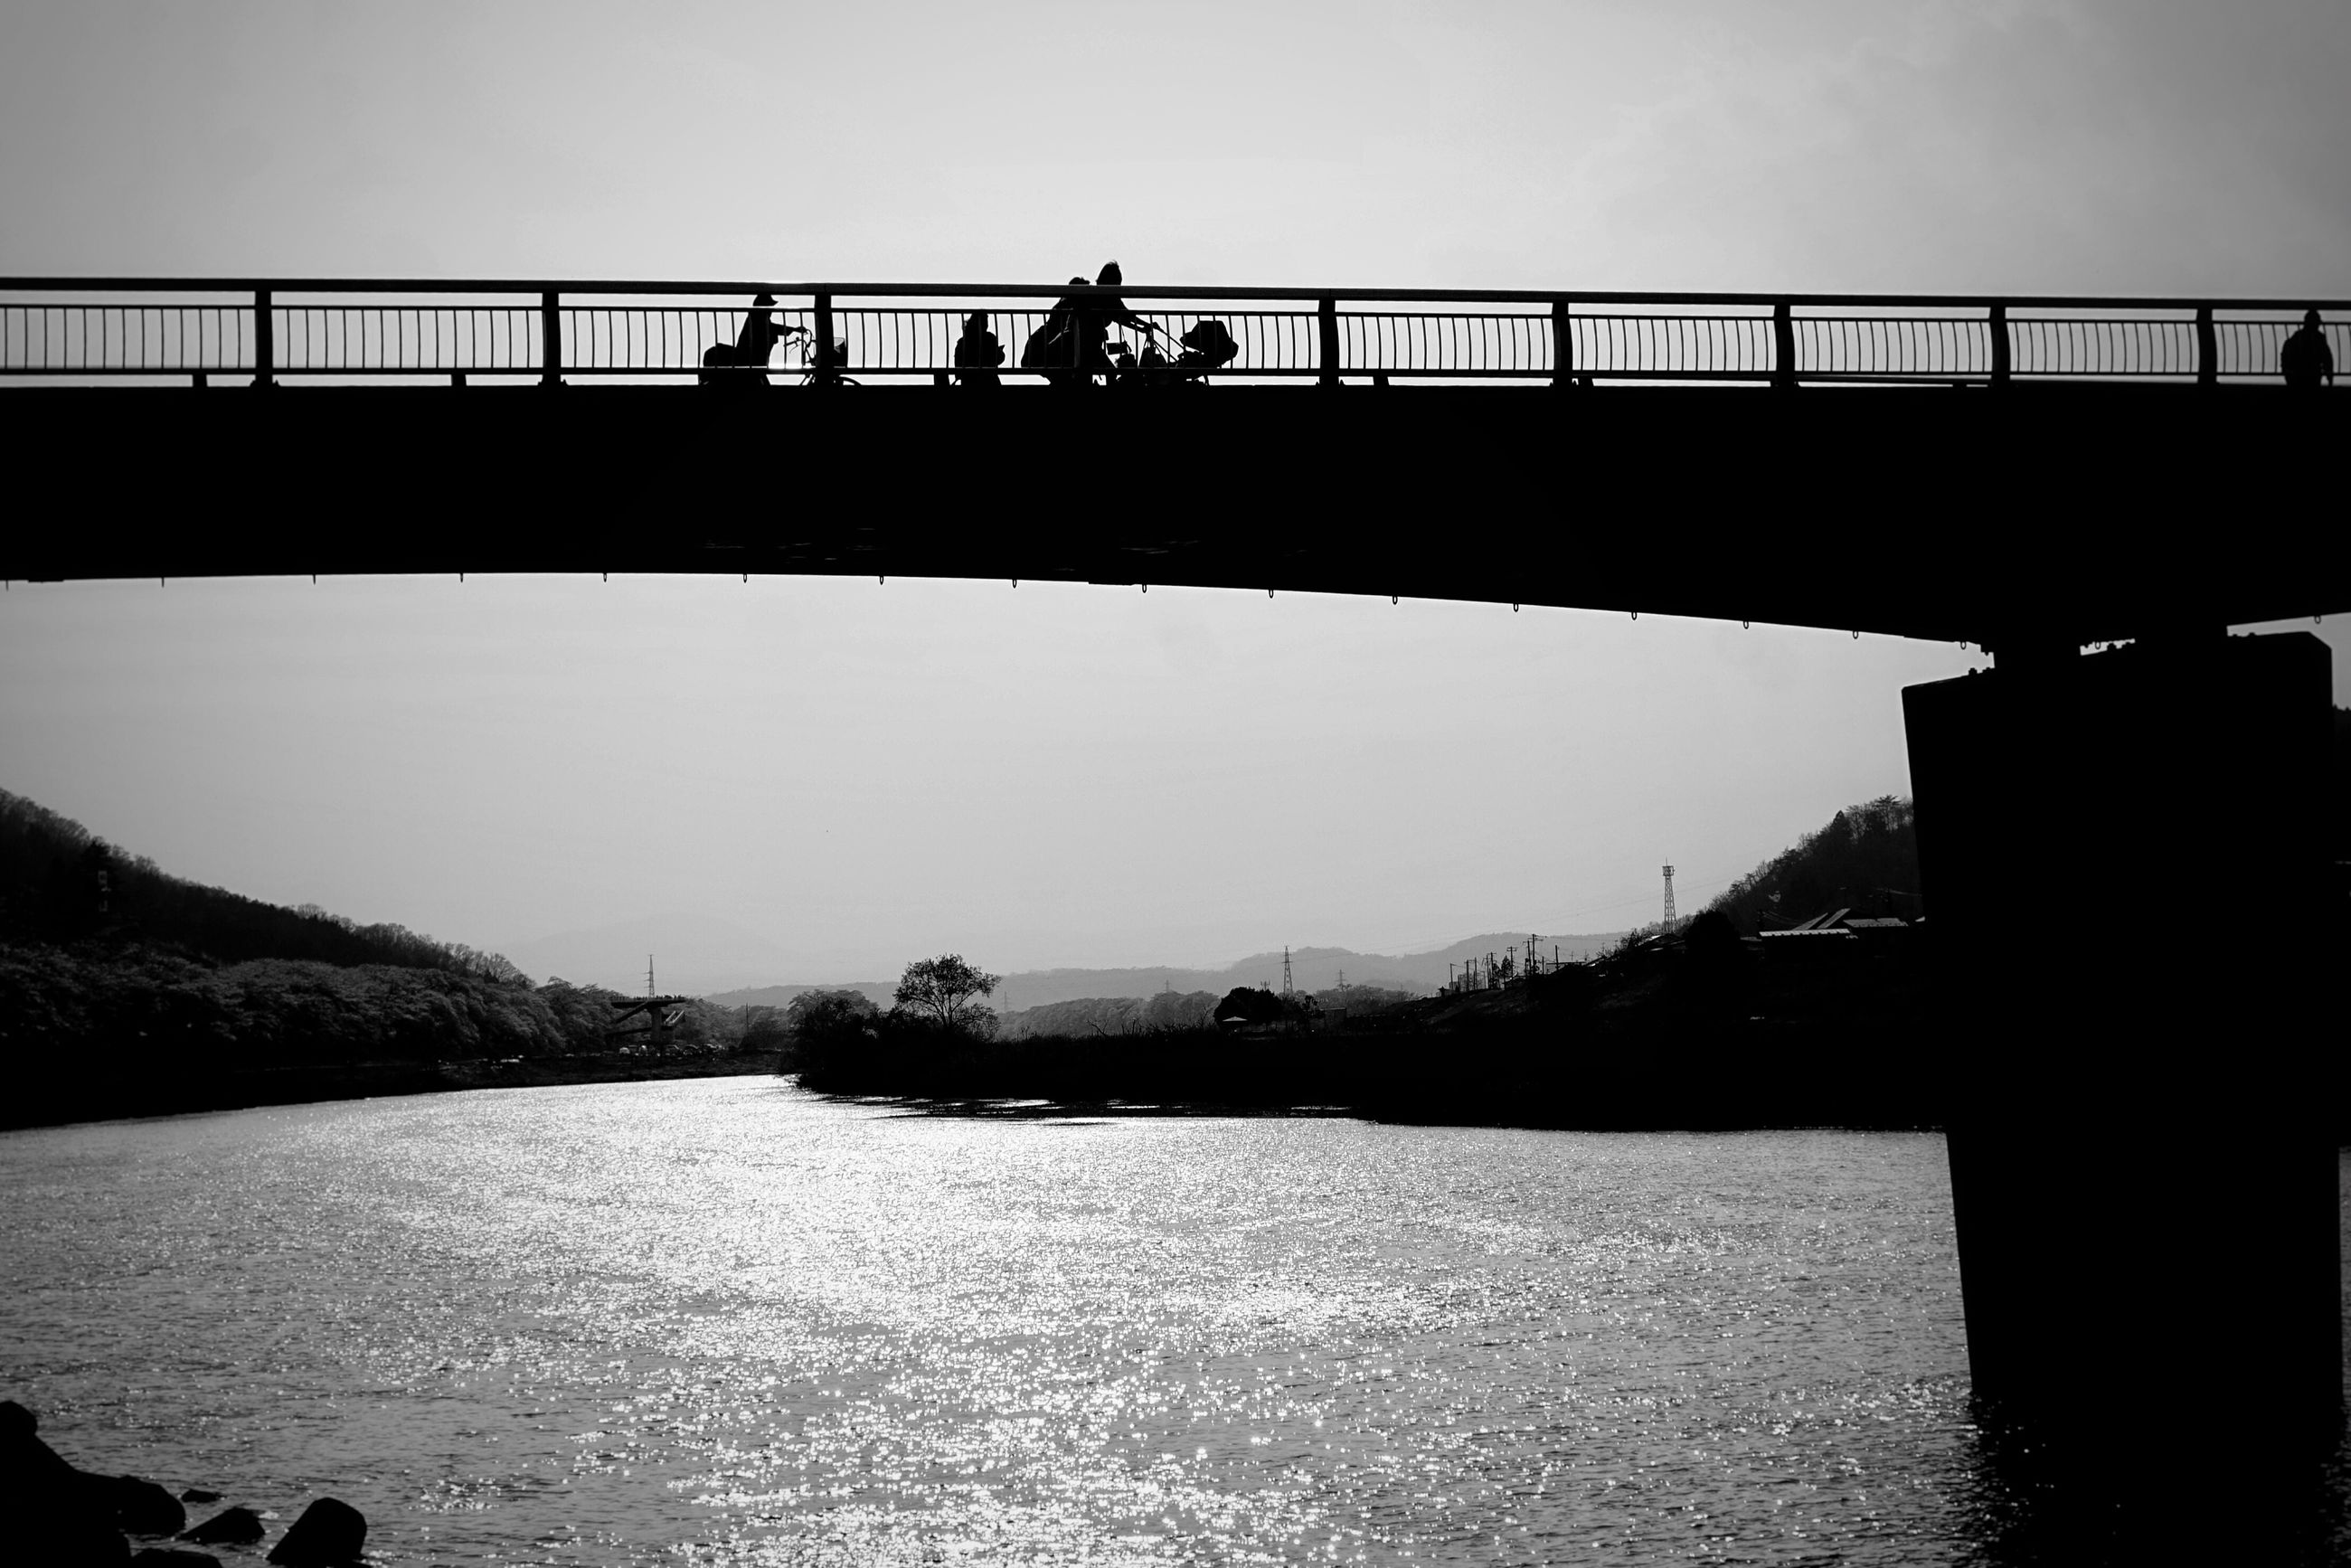 bridge - man made structure, connection, bridge, built structure, architecture, railing, river, sky, outdoors, real people, silhouette, men, clear sky, lifestyles, day, water, travel destinations, footbridge, city, mountain, nature, people